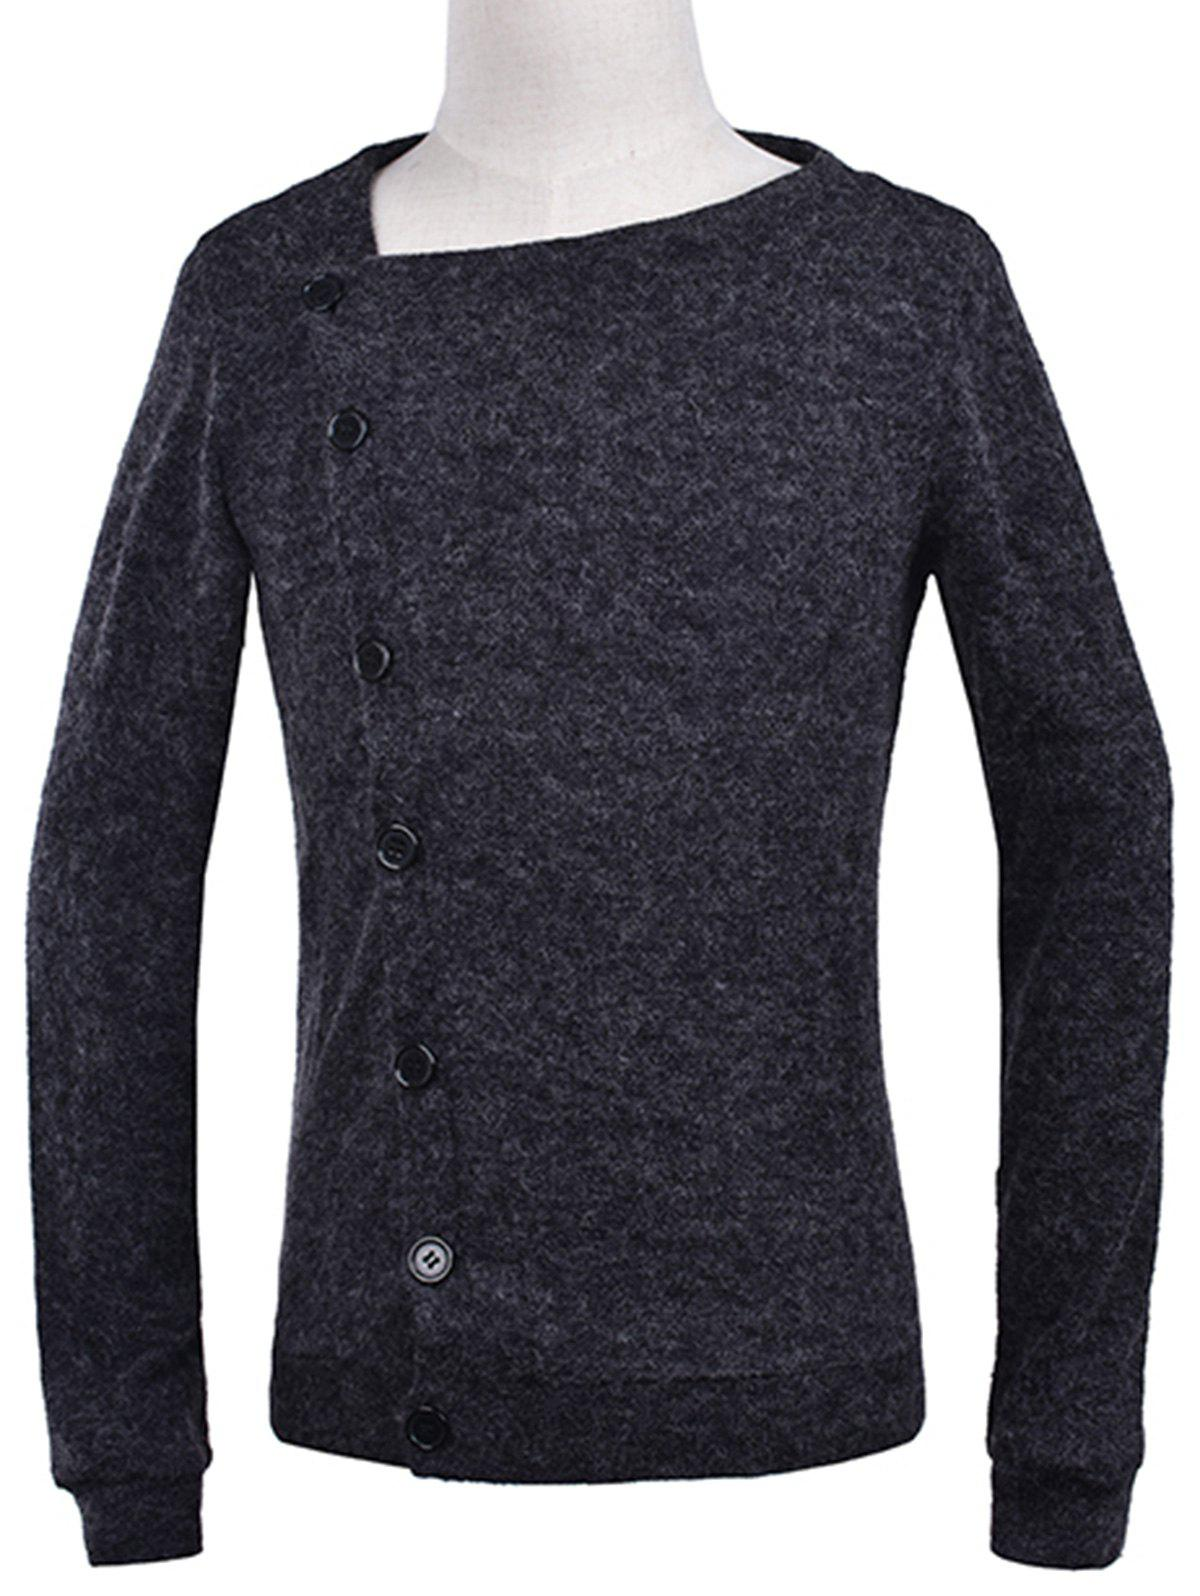 Knitted Oblique Button Up Cardigan - DEEP GRAY 2XL